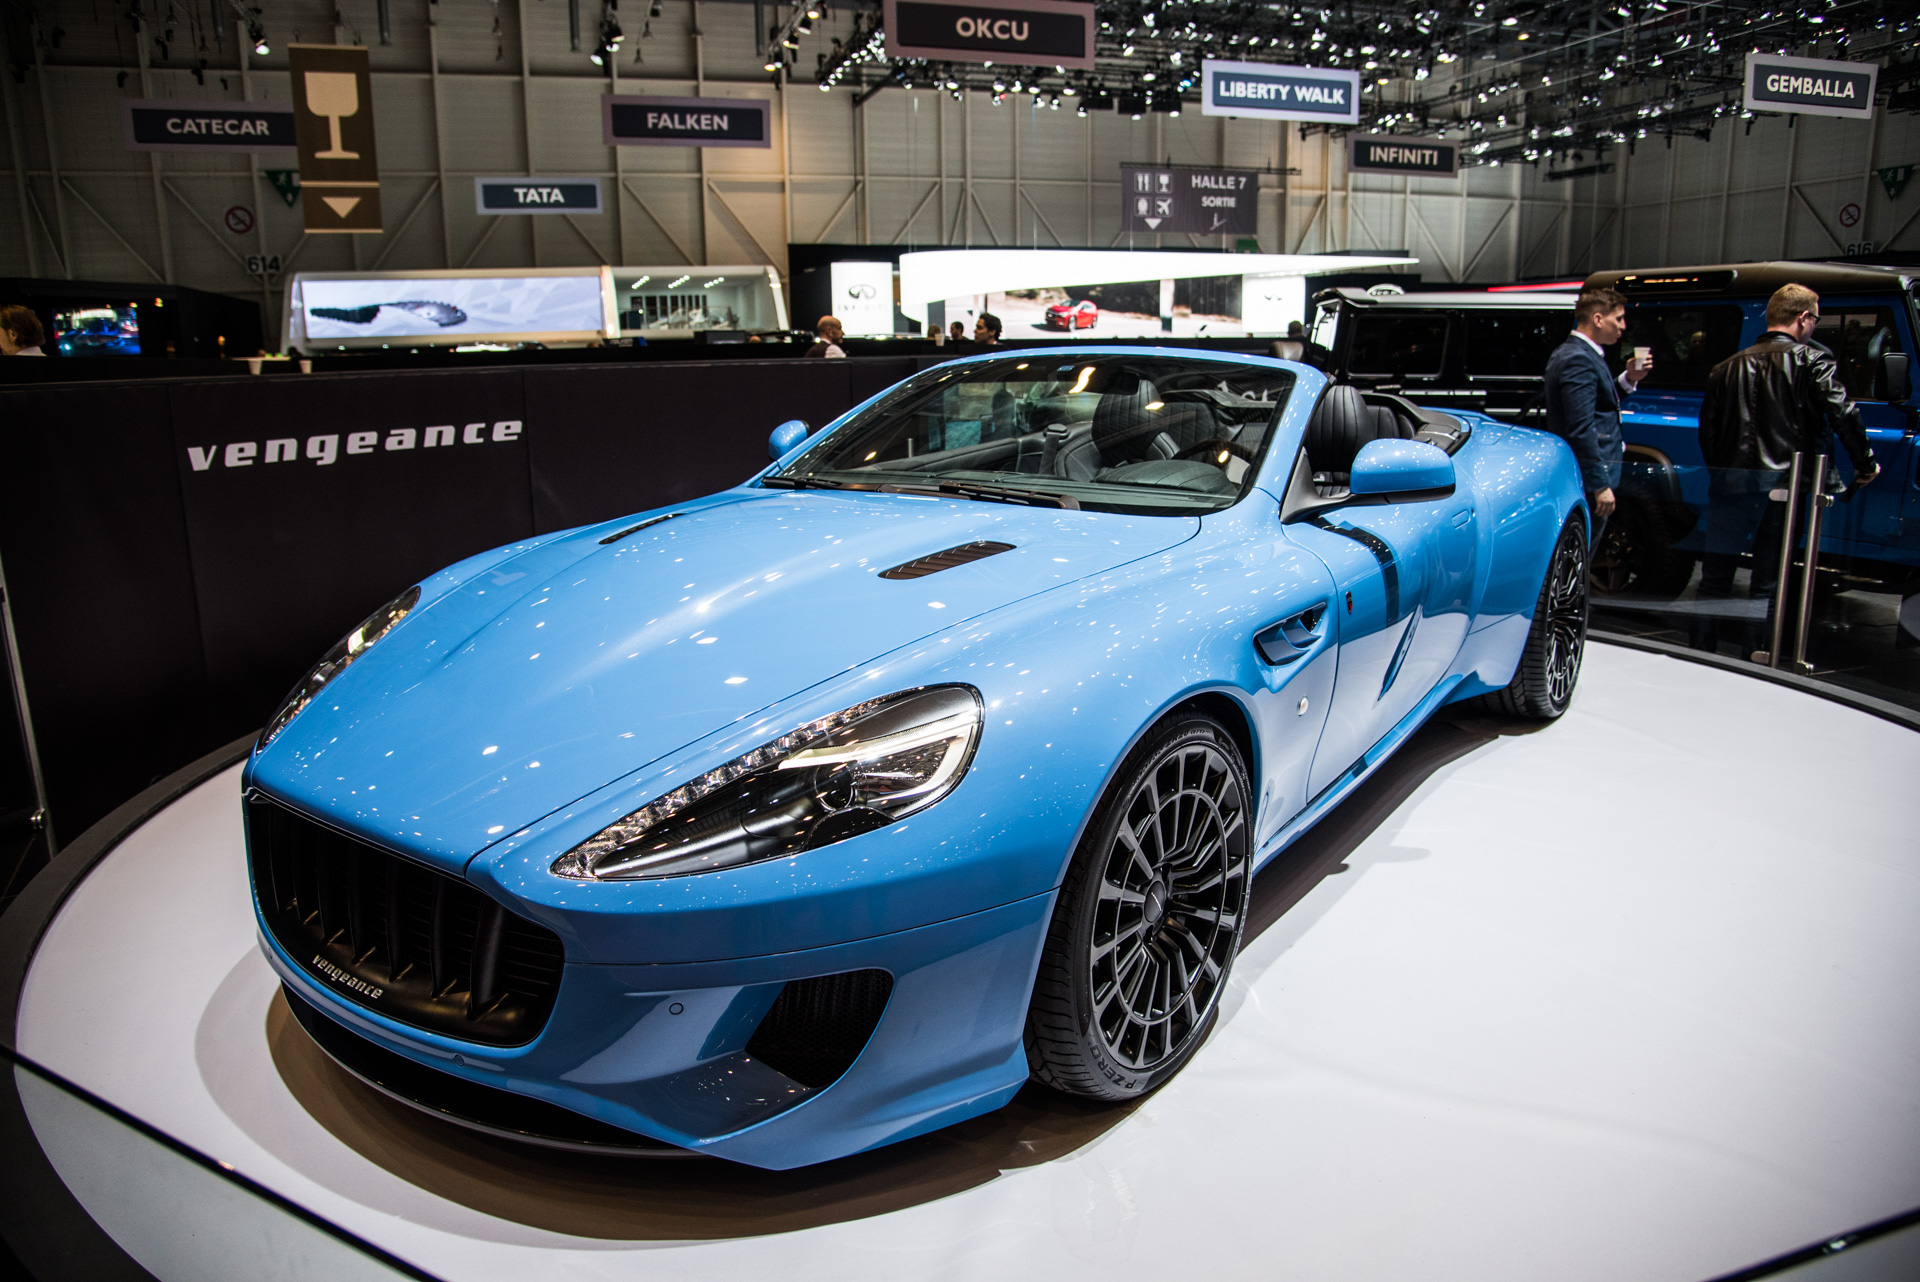 geneva-international-motor-show-igor-sinitsin-47